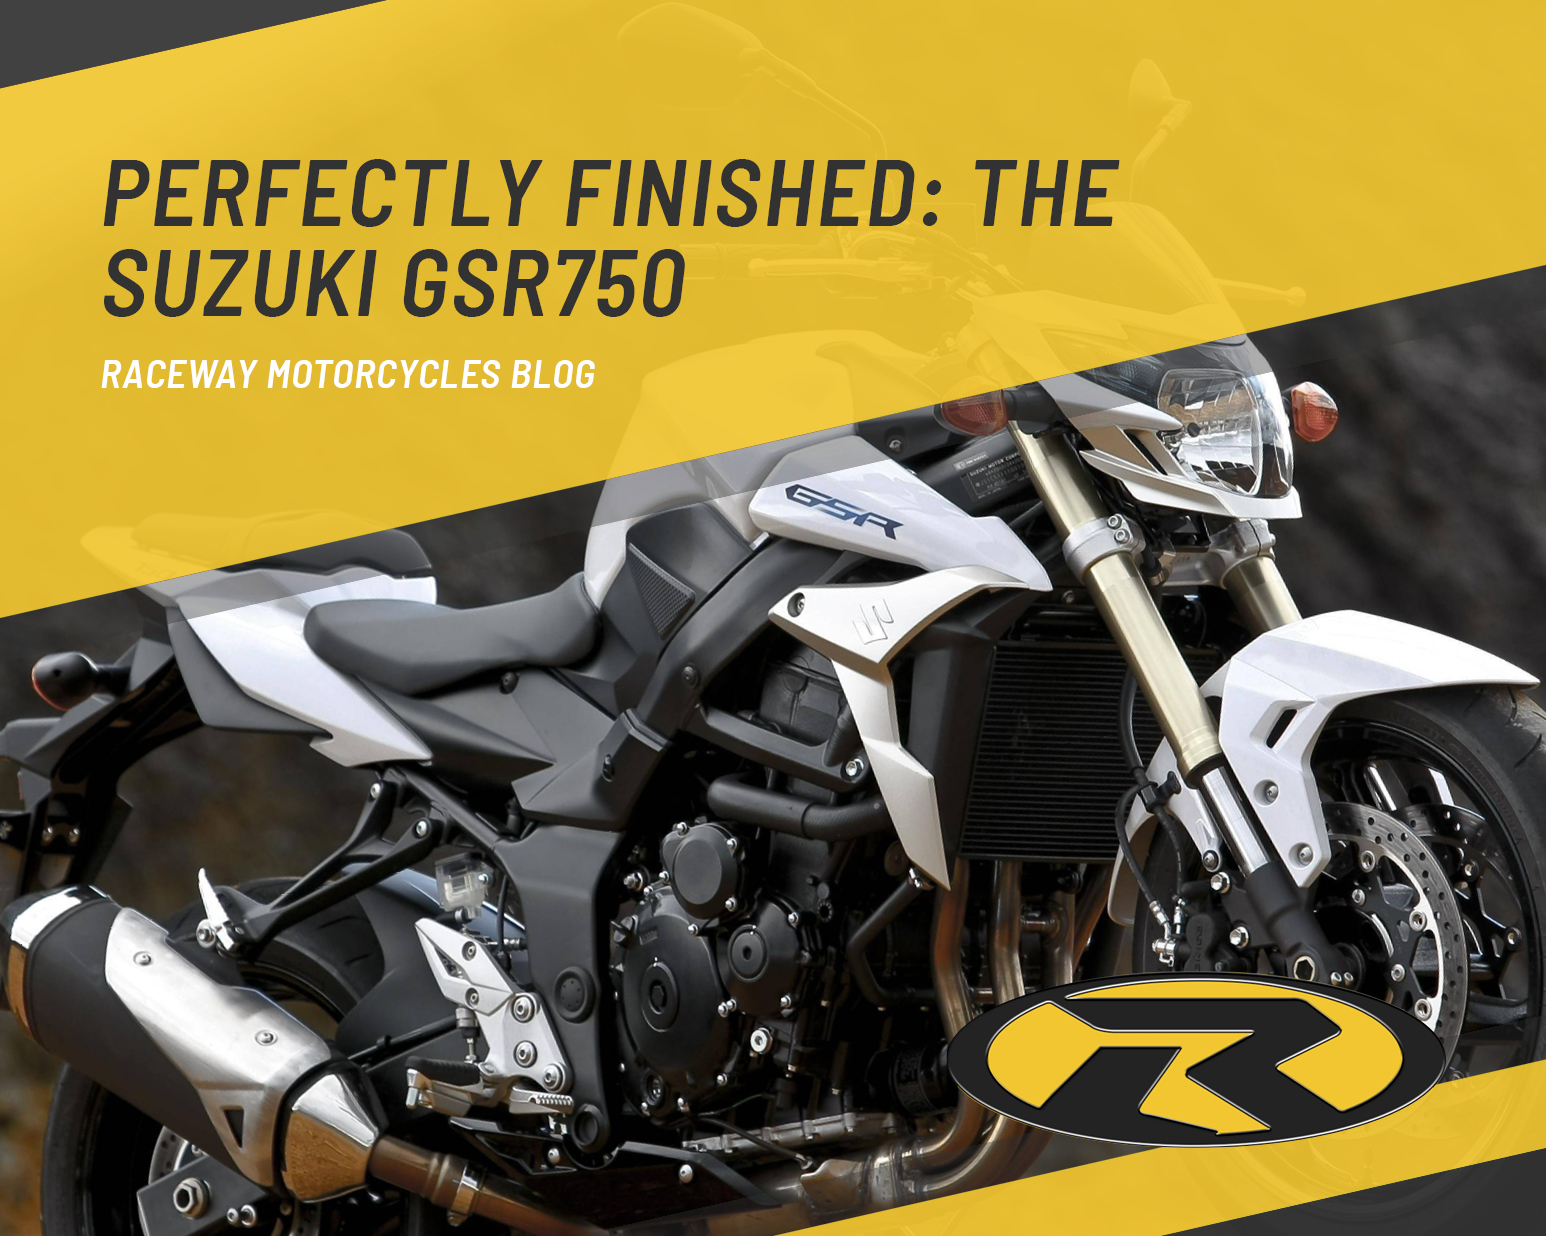 Perfectly finished: The Suzuki GSR750